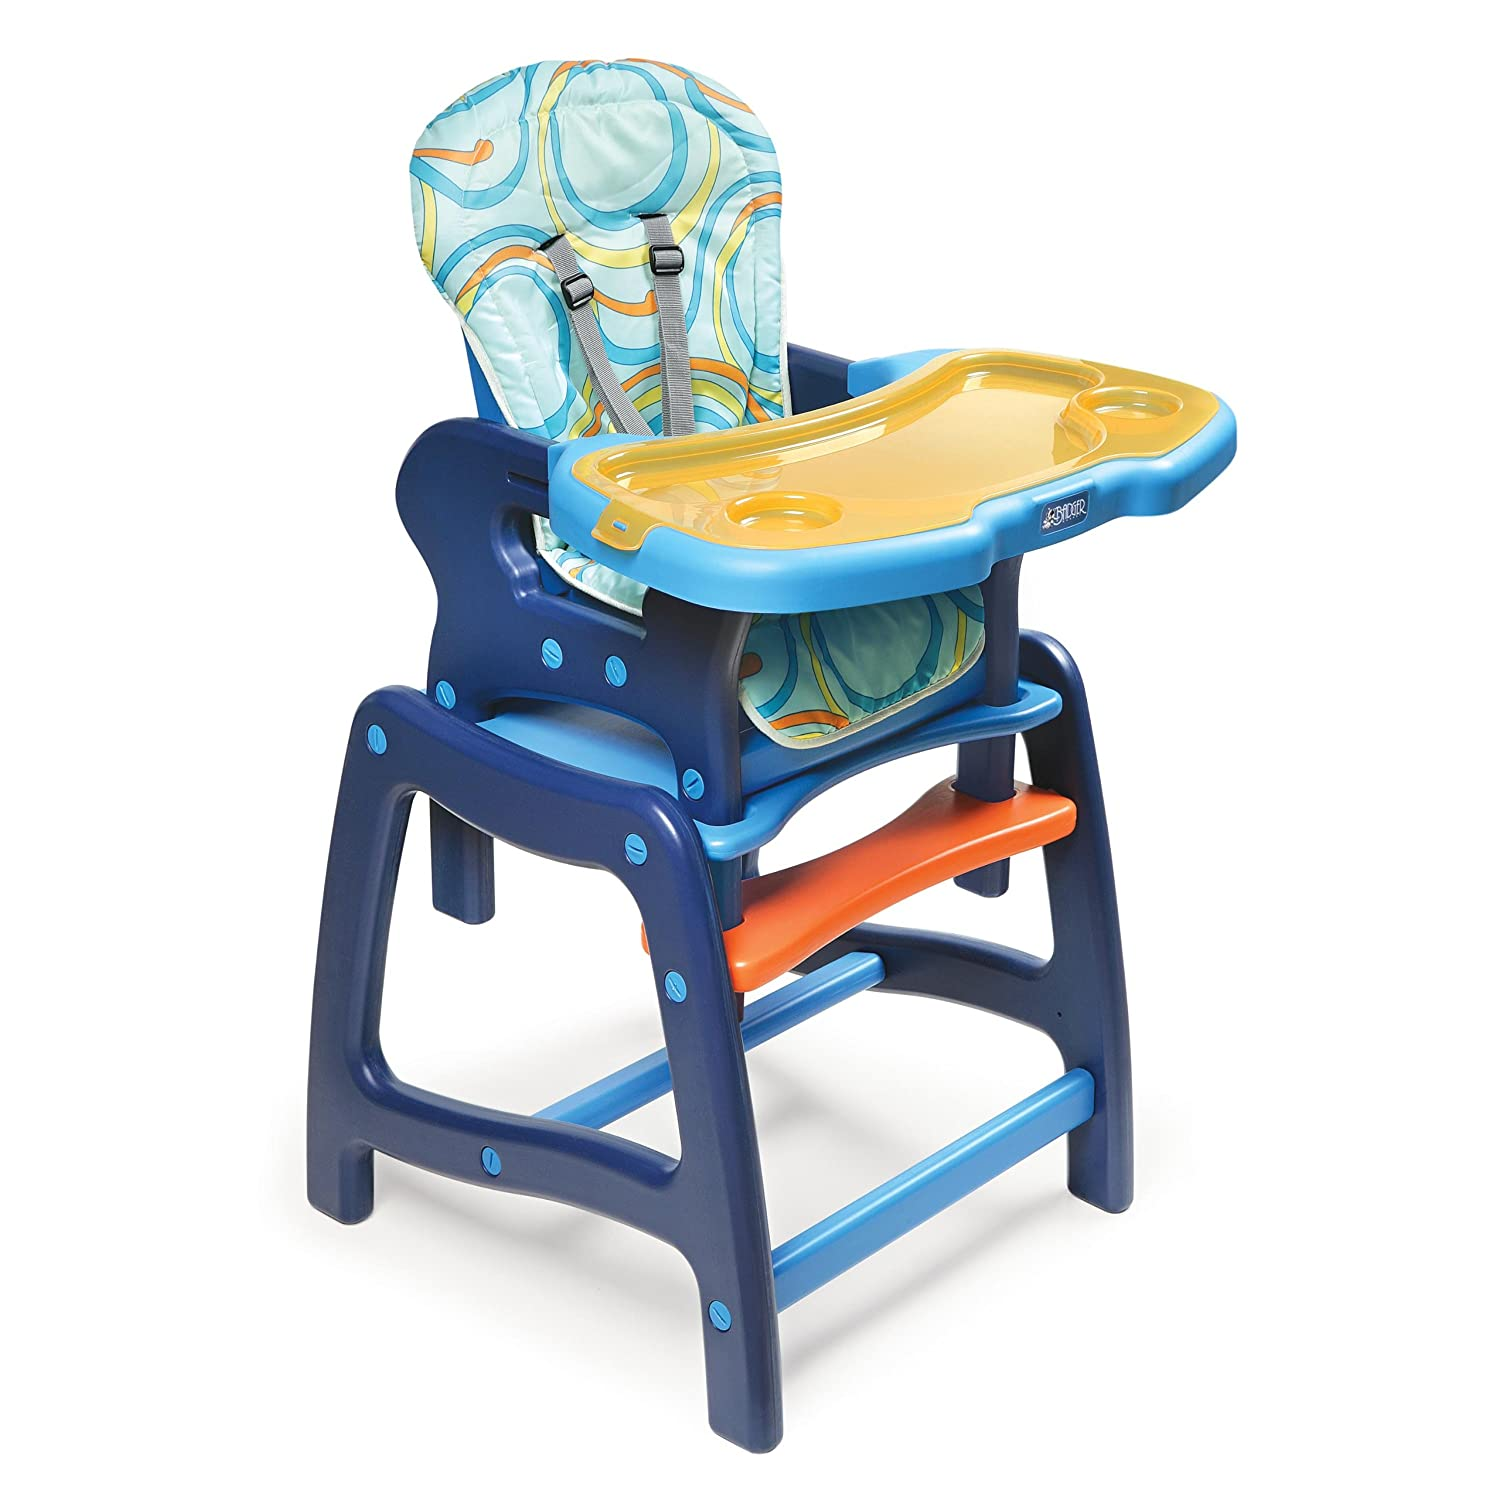 Top 10 Best Baby Adjustable High Chairs 2016